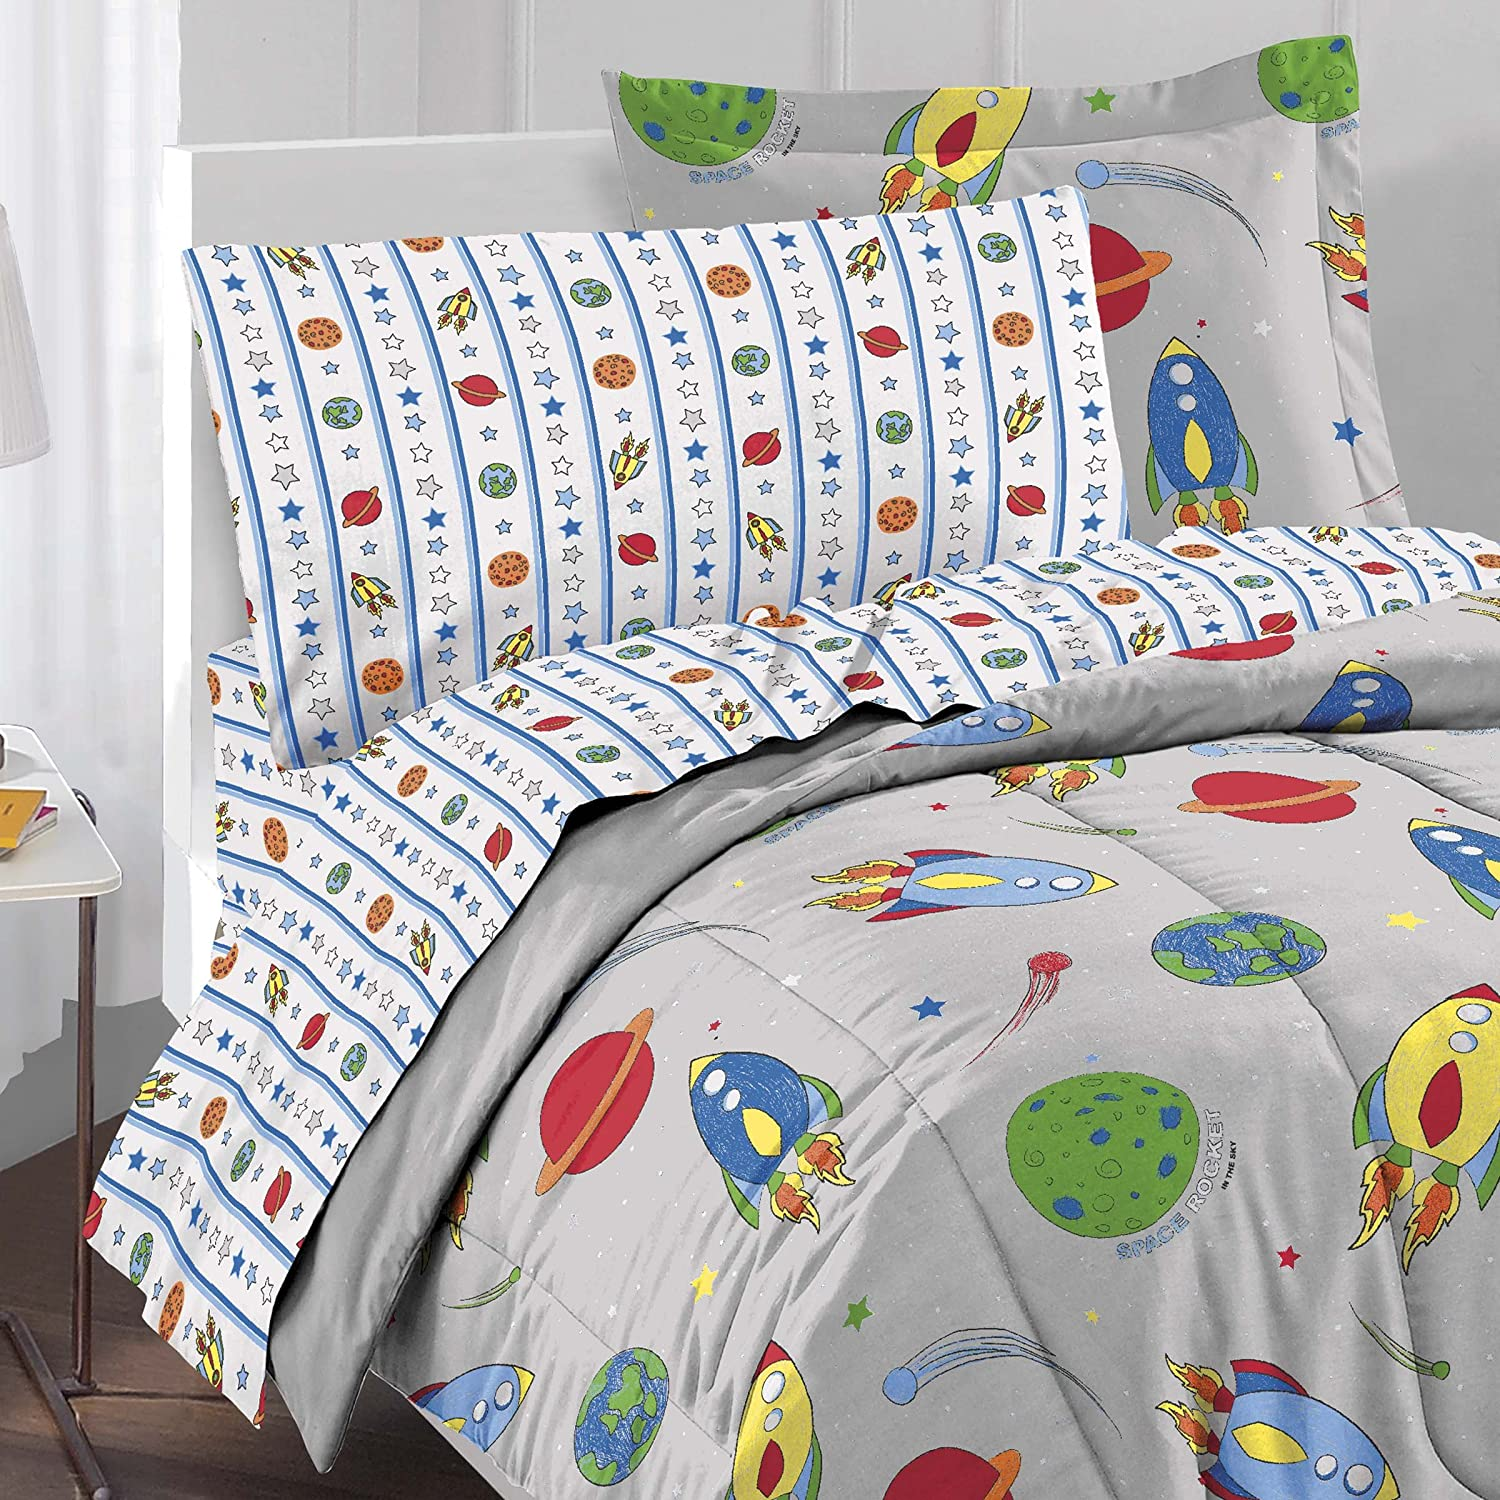 Amazon com  Dream Factory Space Rocket Ultra Soft Microfiber Comforter Set   Multi Colored  Twin  Home   Kitchen. Amazon com  Dream Factory Space Rocket Ultra Soft Microfiber